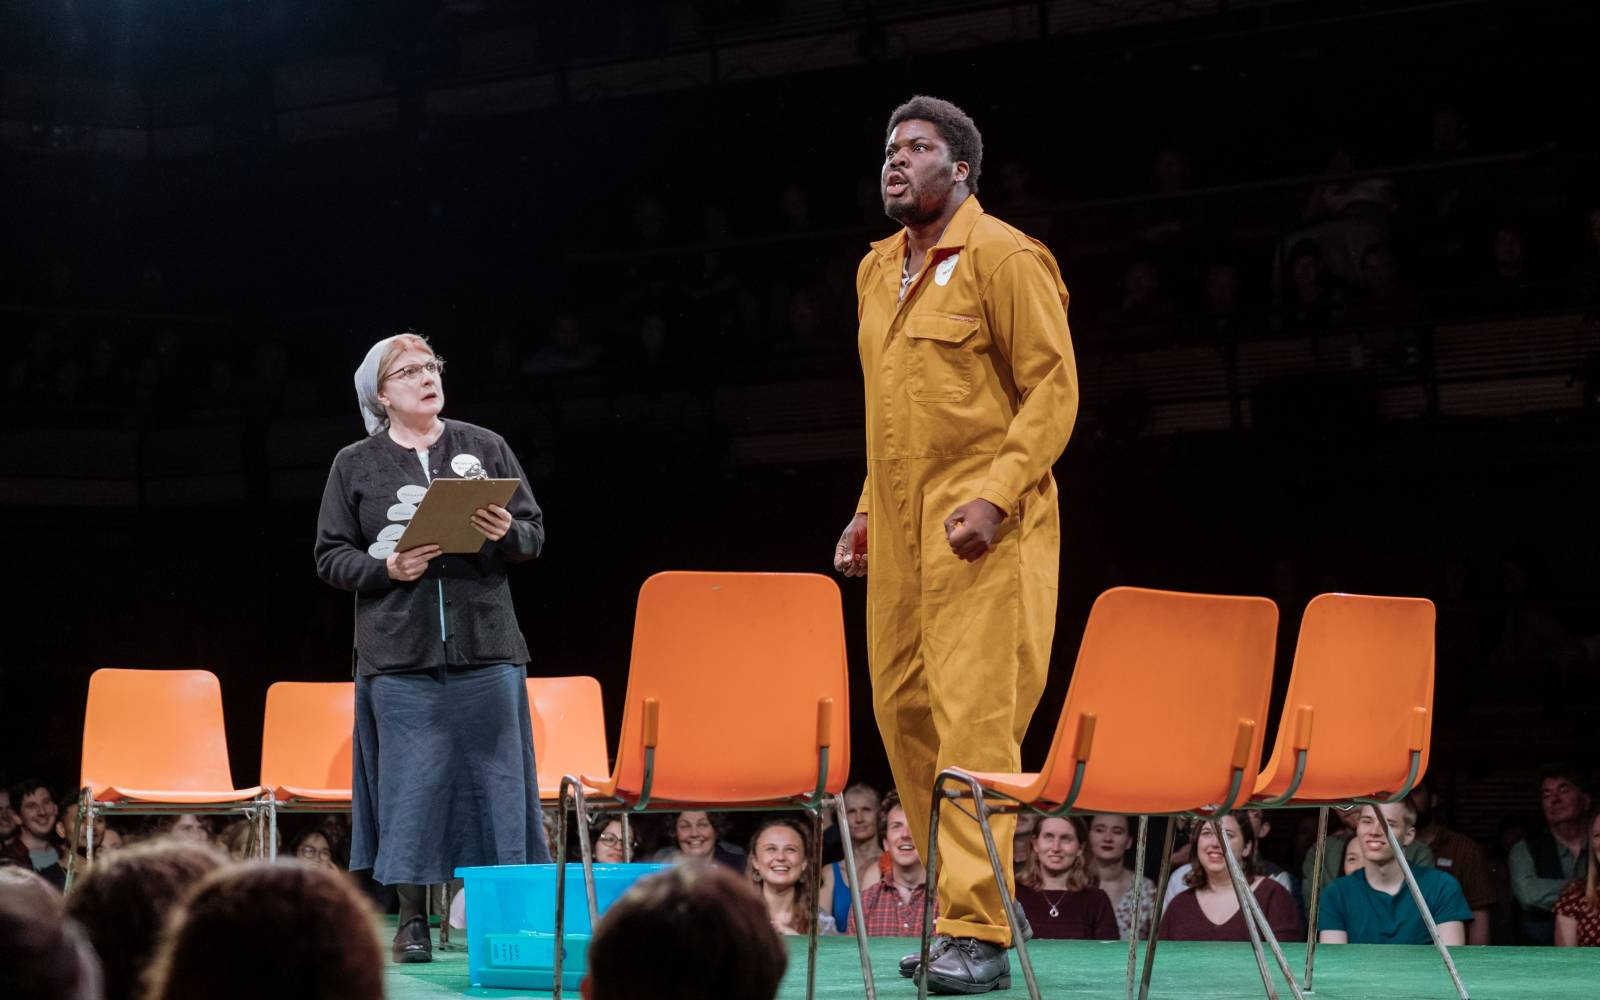 Hammed Animashaun (Bottom) performs, as Felicity Montagu (Quince) watches. They are surrounded by plastic chairs